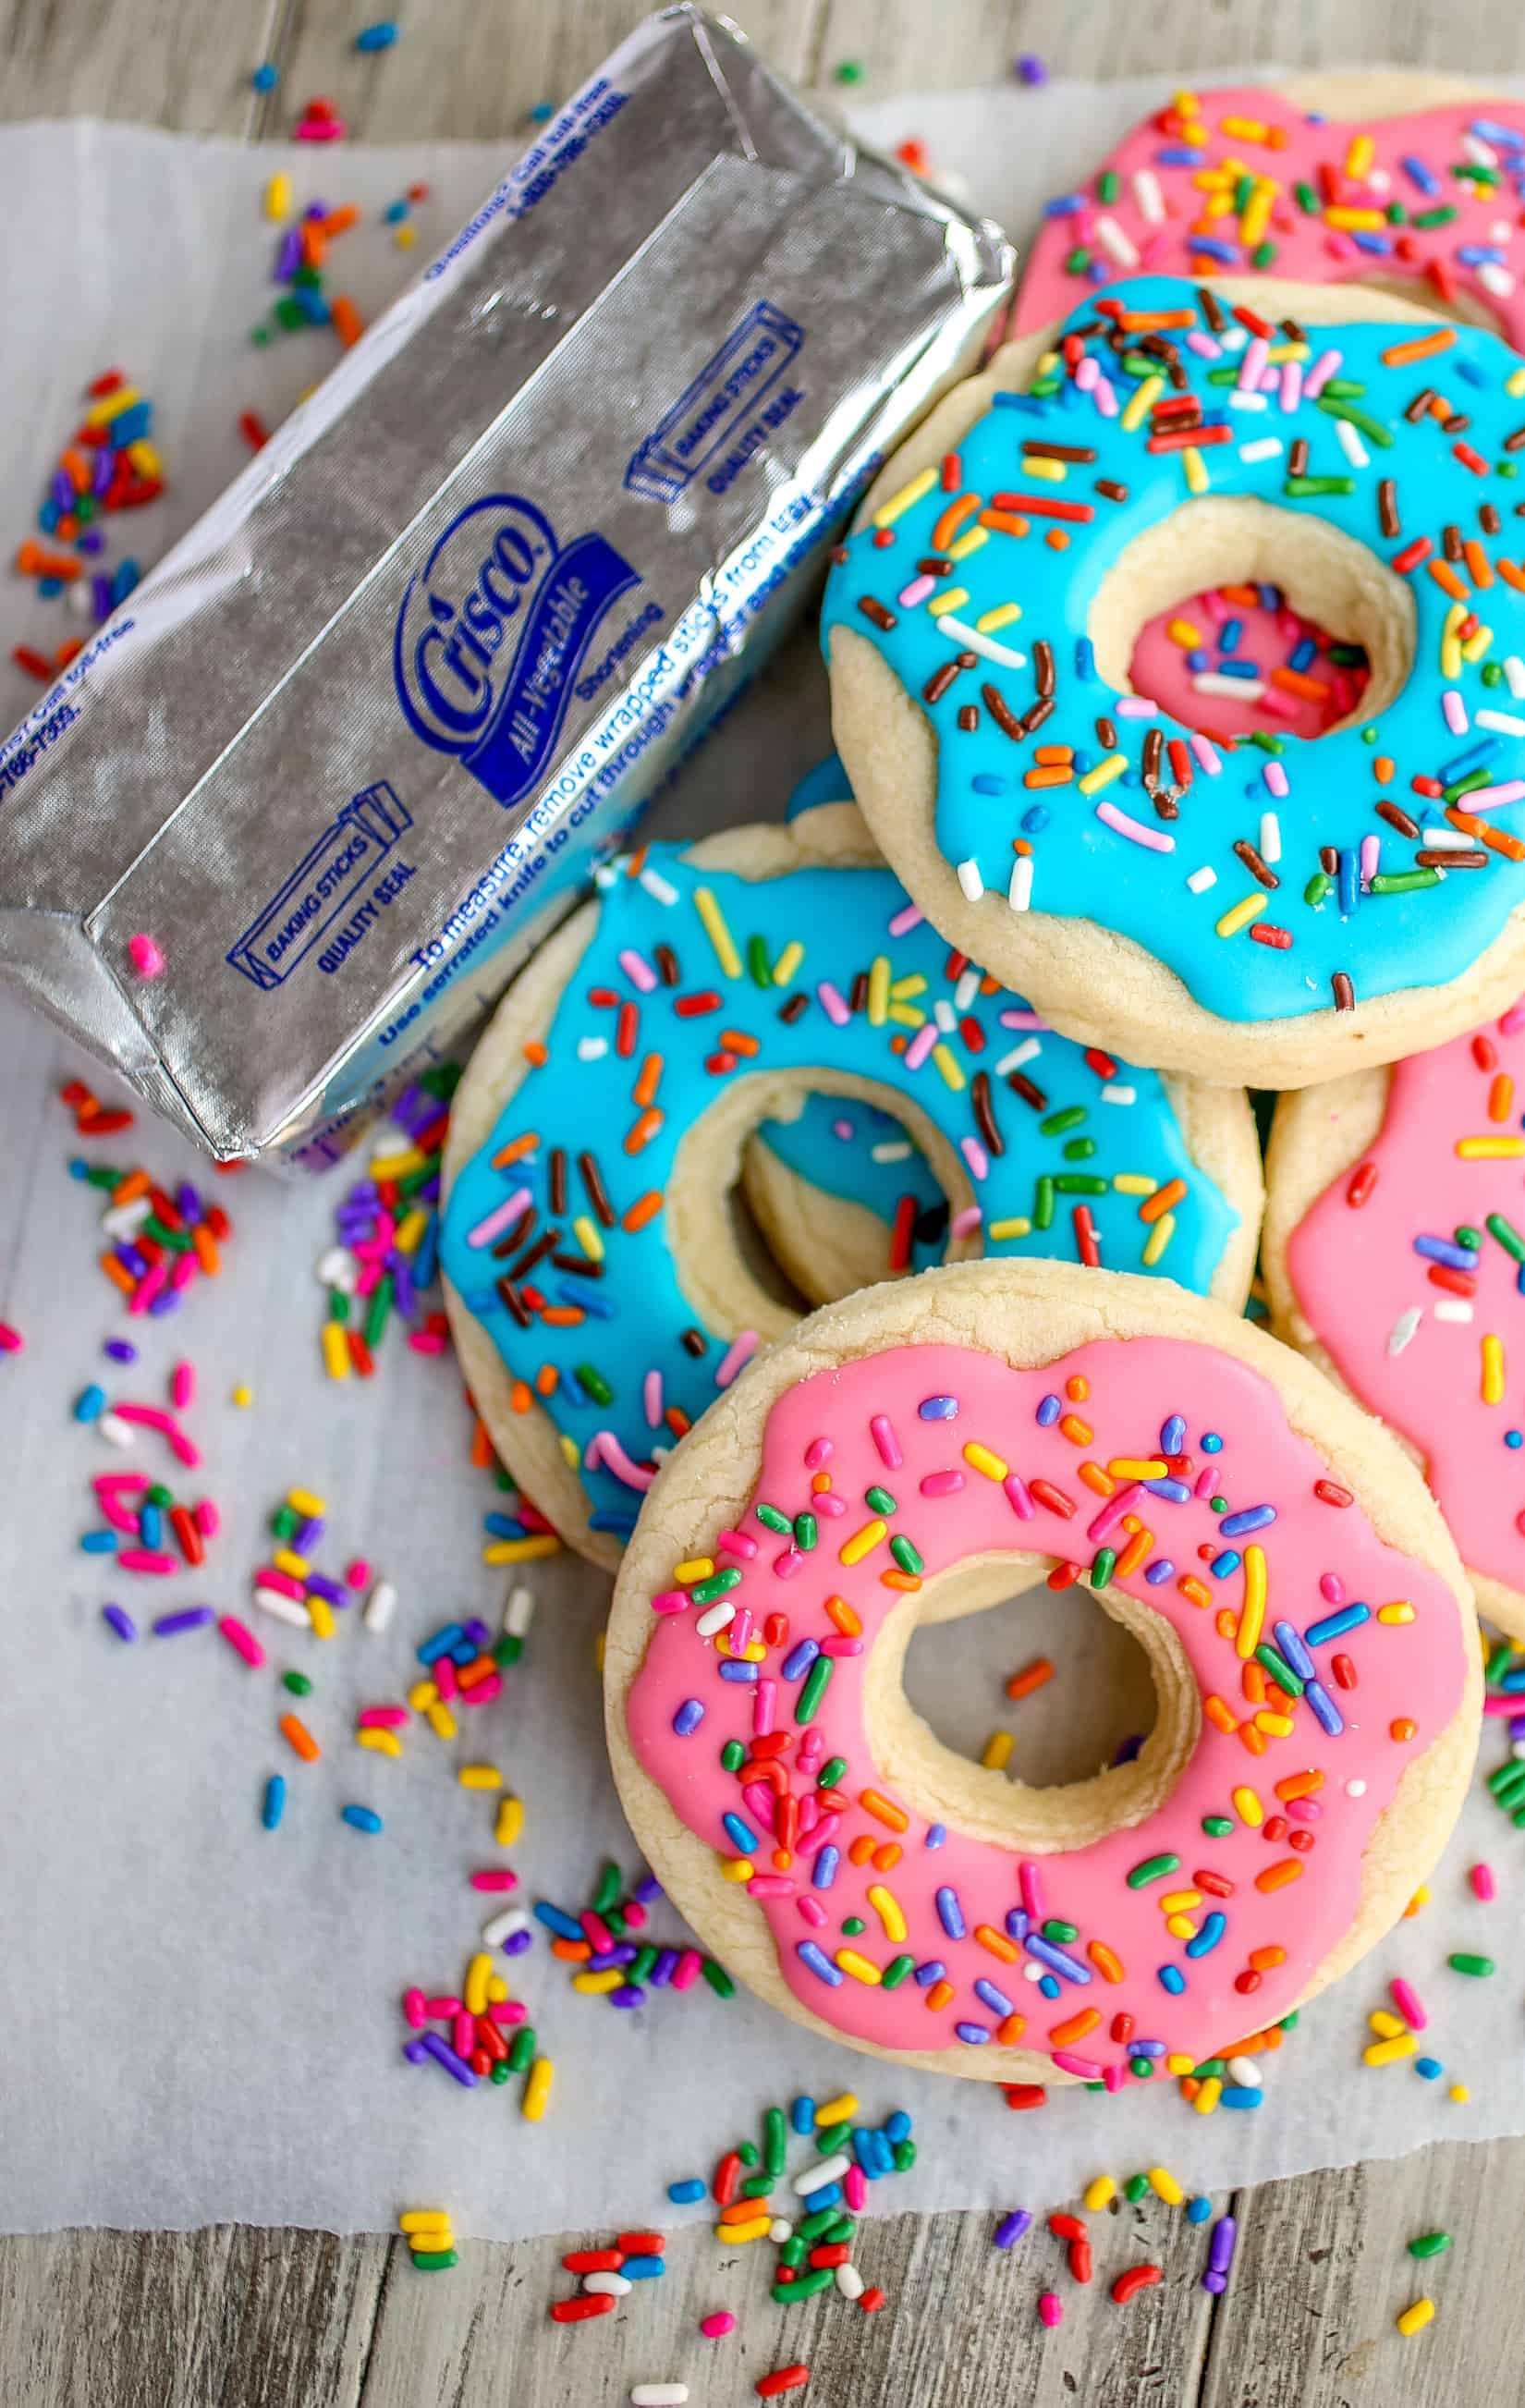 Donut Shaped Sugar Cookies with Royal Icing - Deliciously thick and soft sugar cookies decorated as donuts! These cookies will melt in your mouth!